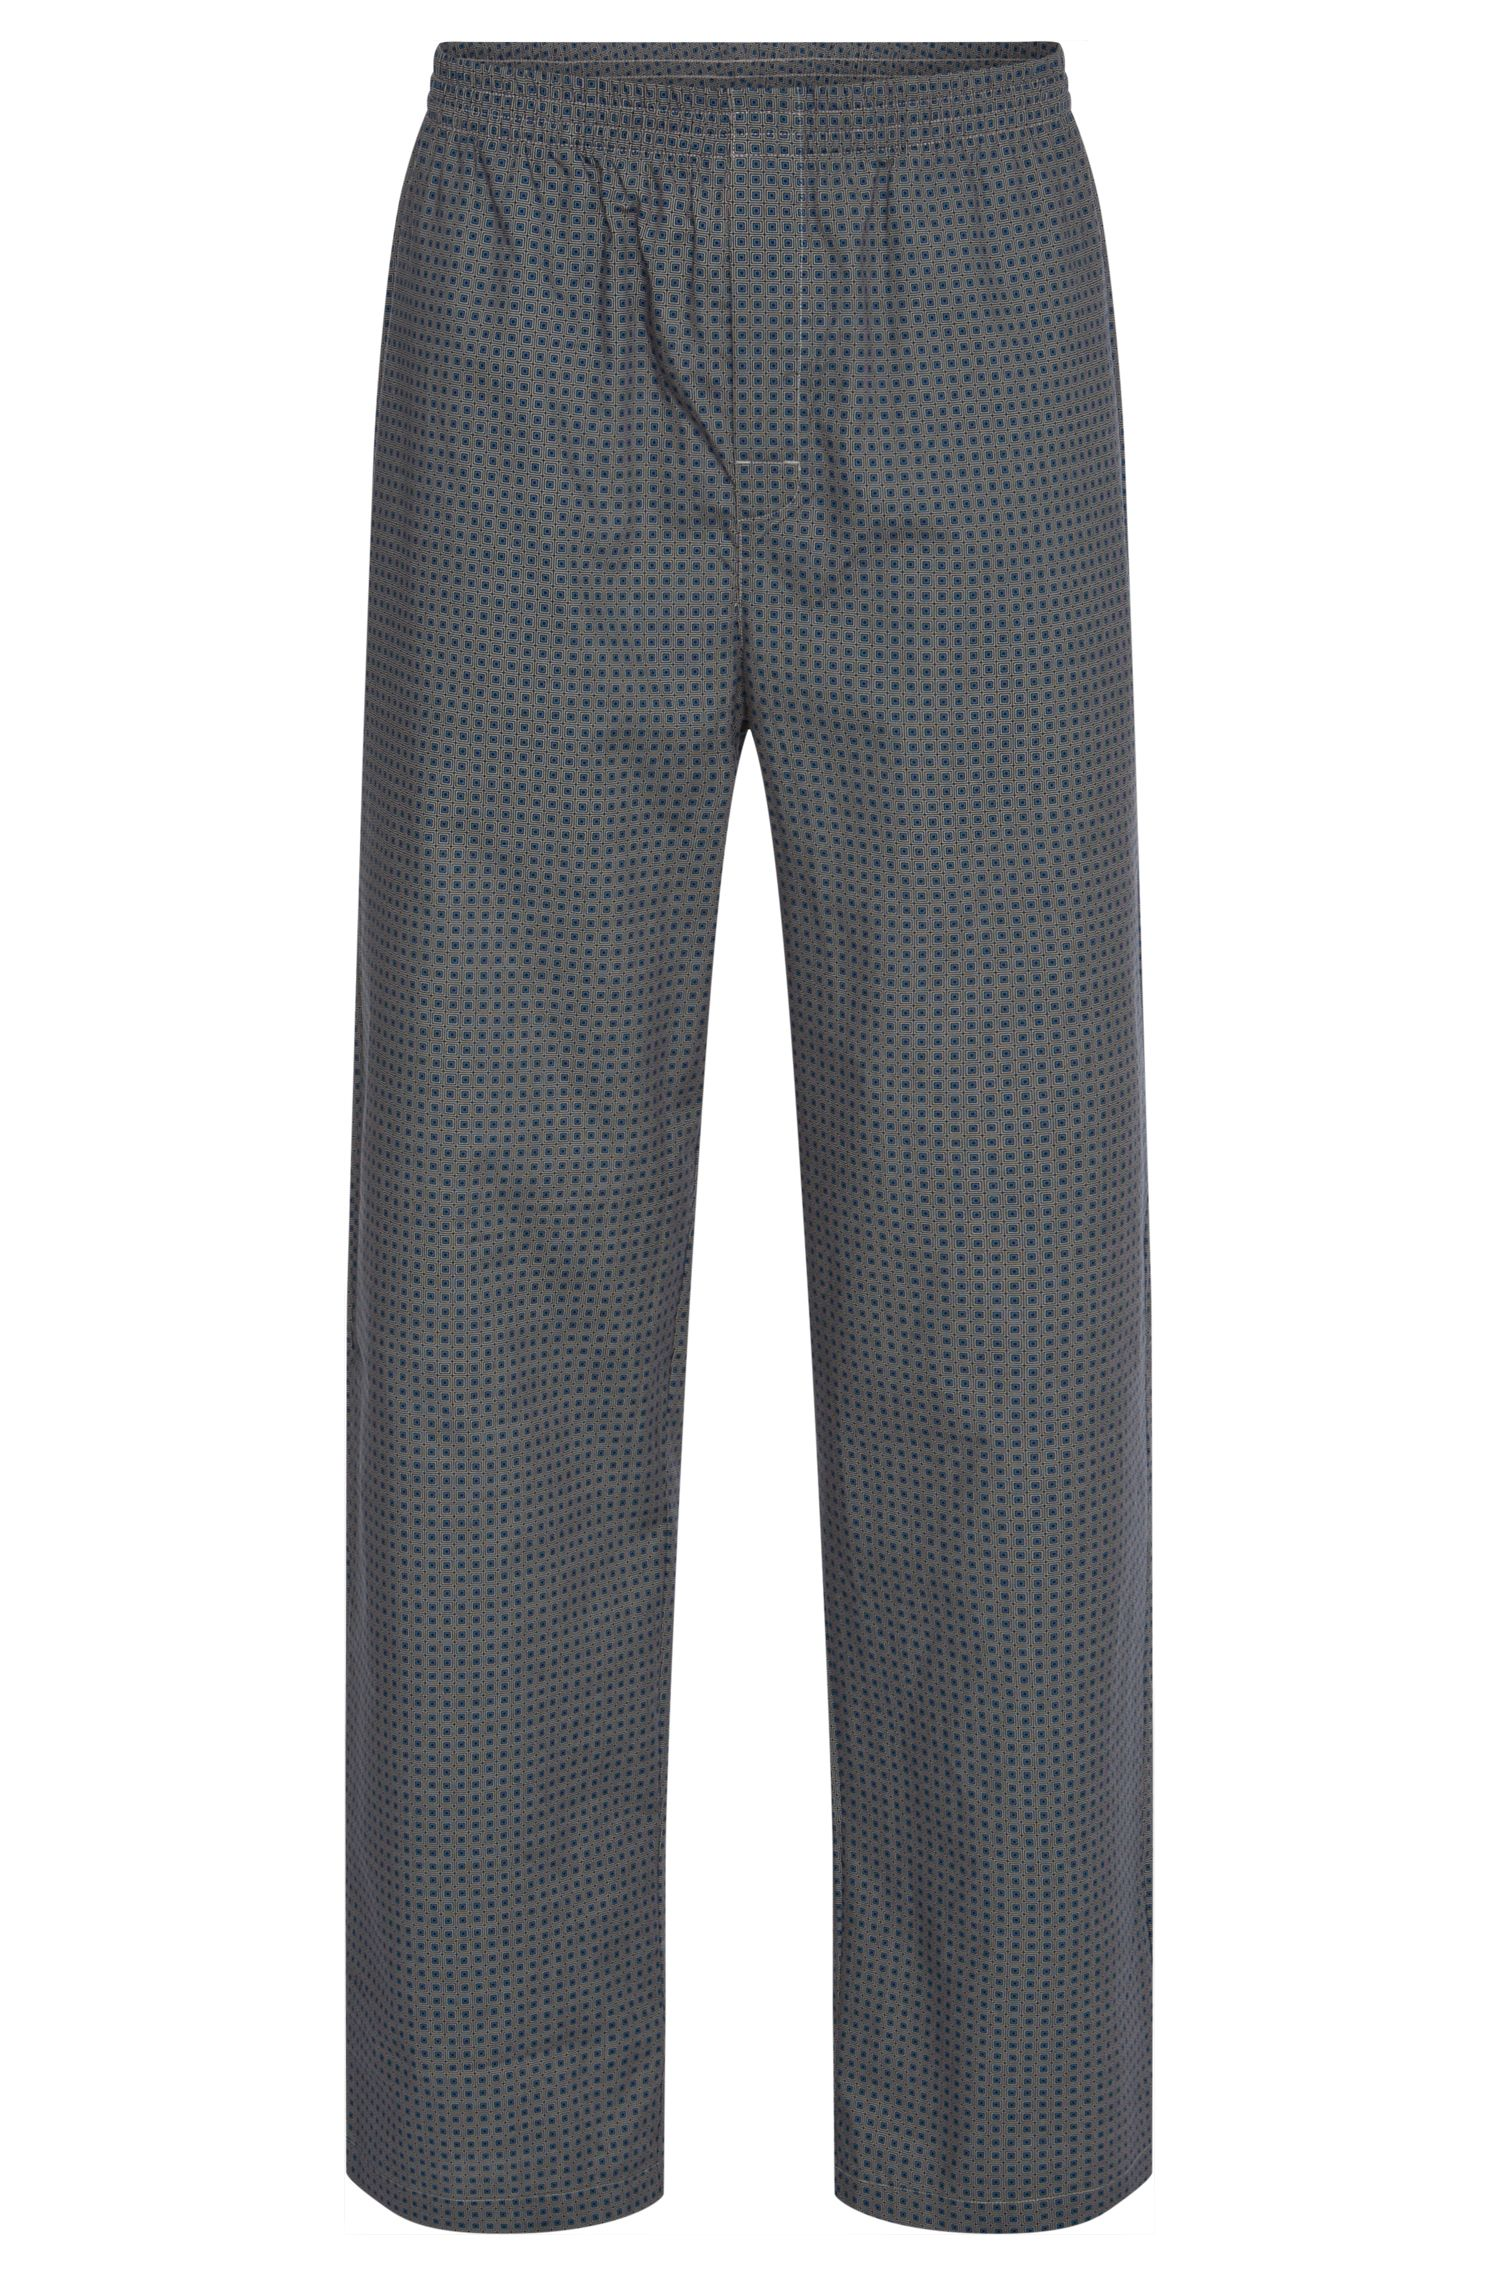 All-over patterned pyjama bottoms in cotton: 'Long Pant CW'